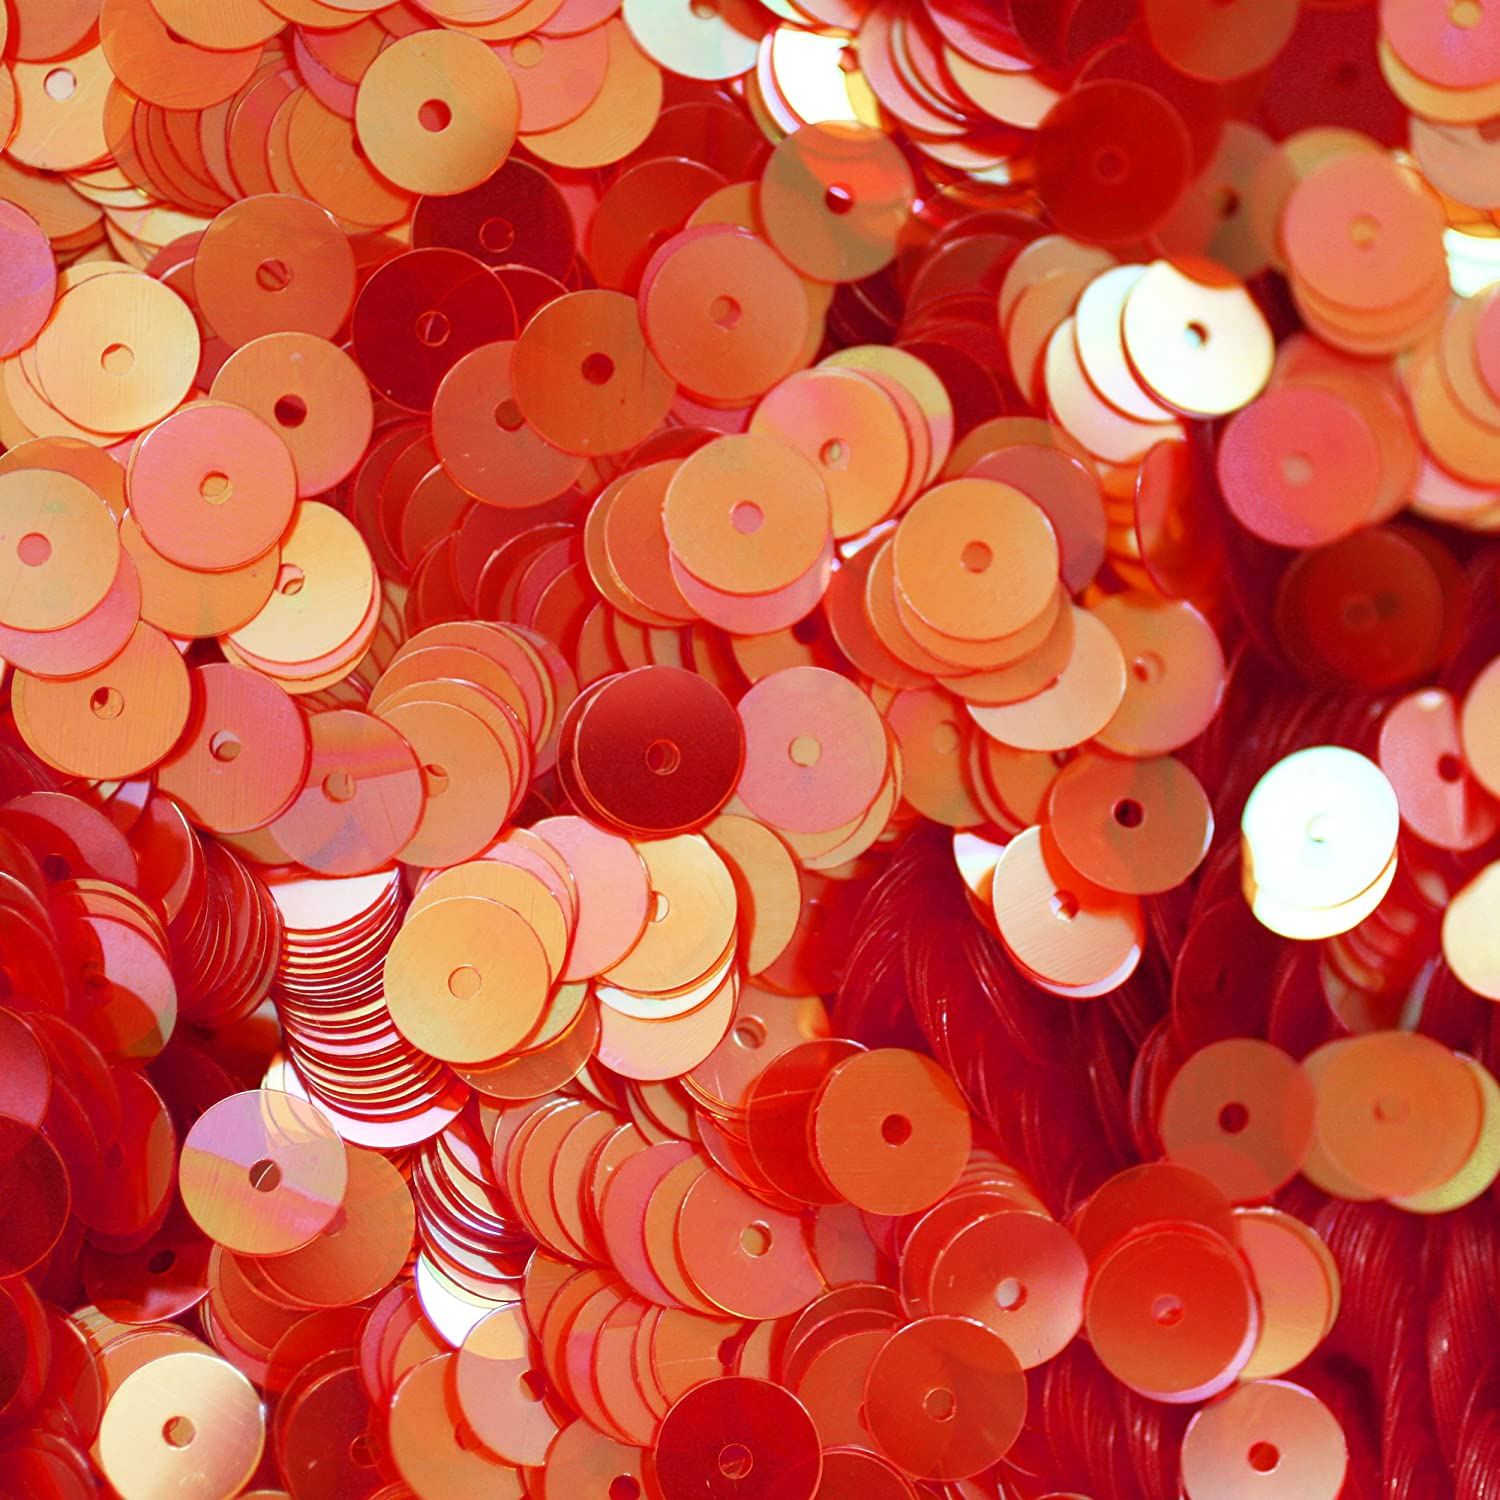 6mm Flat Round SEQUIN PAILLETTES ~ CORAL PINK Rainbow Iris ~ Loose sequins for embroidery, bridal, a